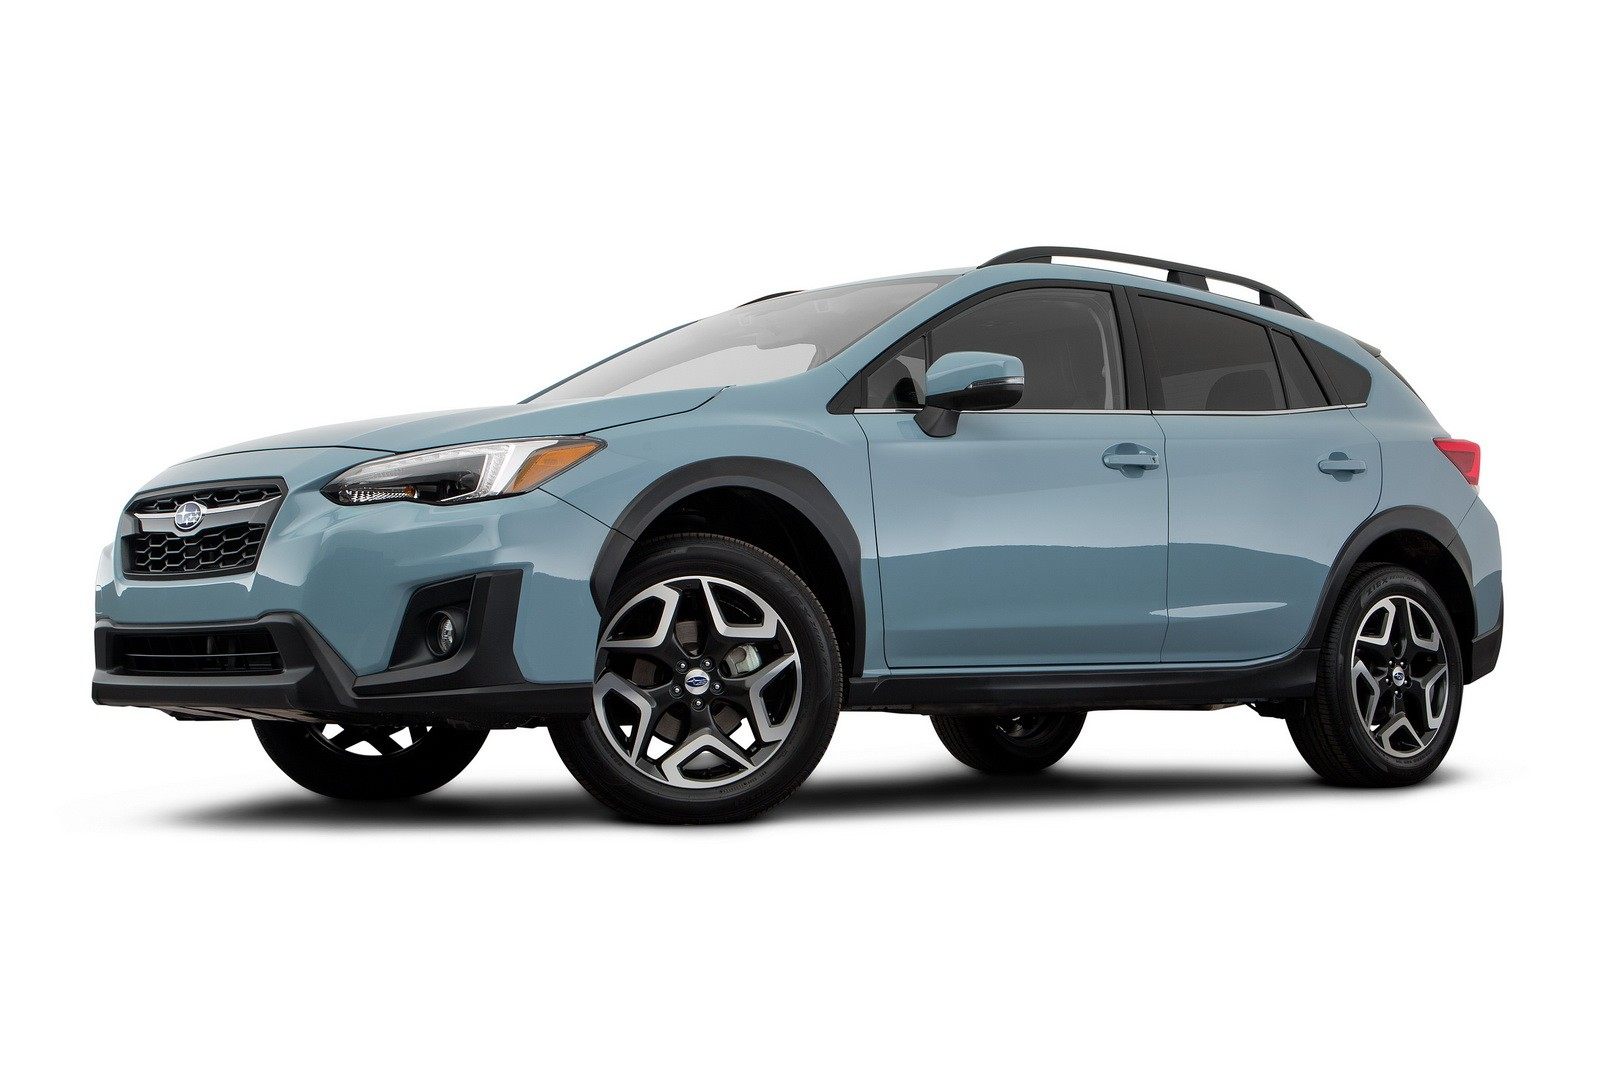 2019 subaru crosstrek hybrid confirmed with toyota 39 s plug in hybrid technology autoevolution. Black Bedroom Furniture Sets. Home Design Ideas